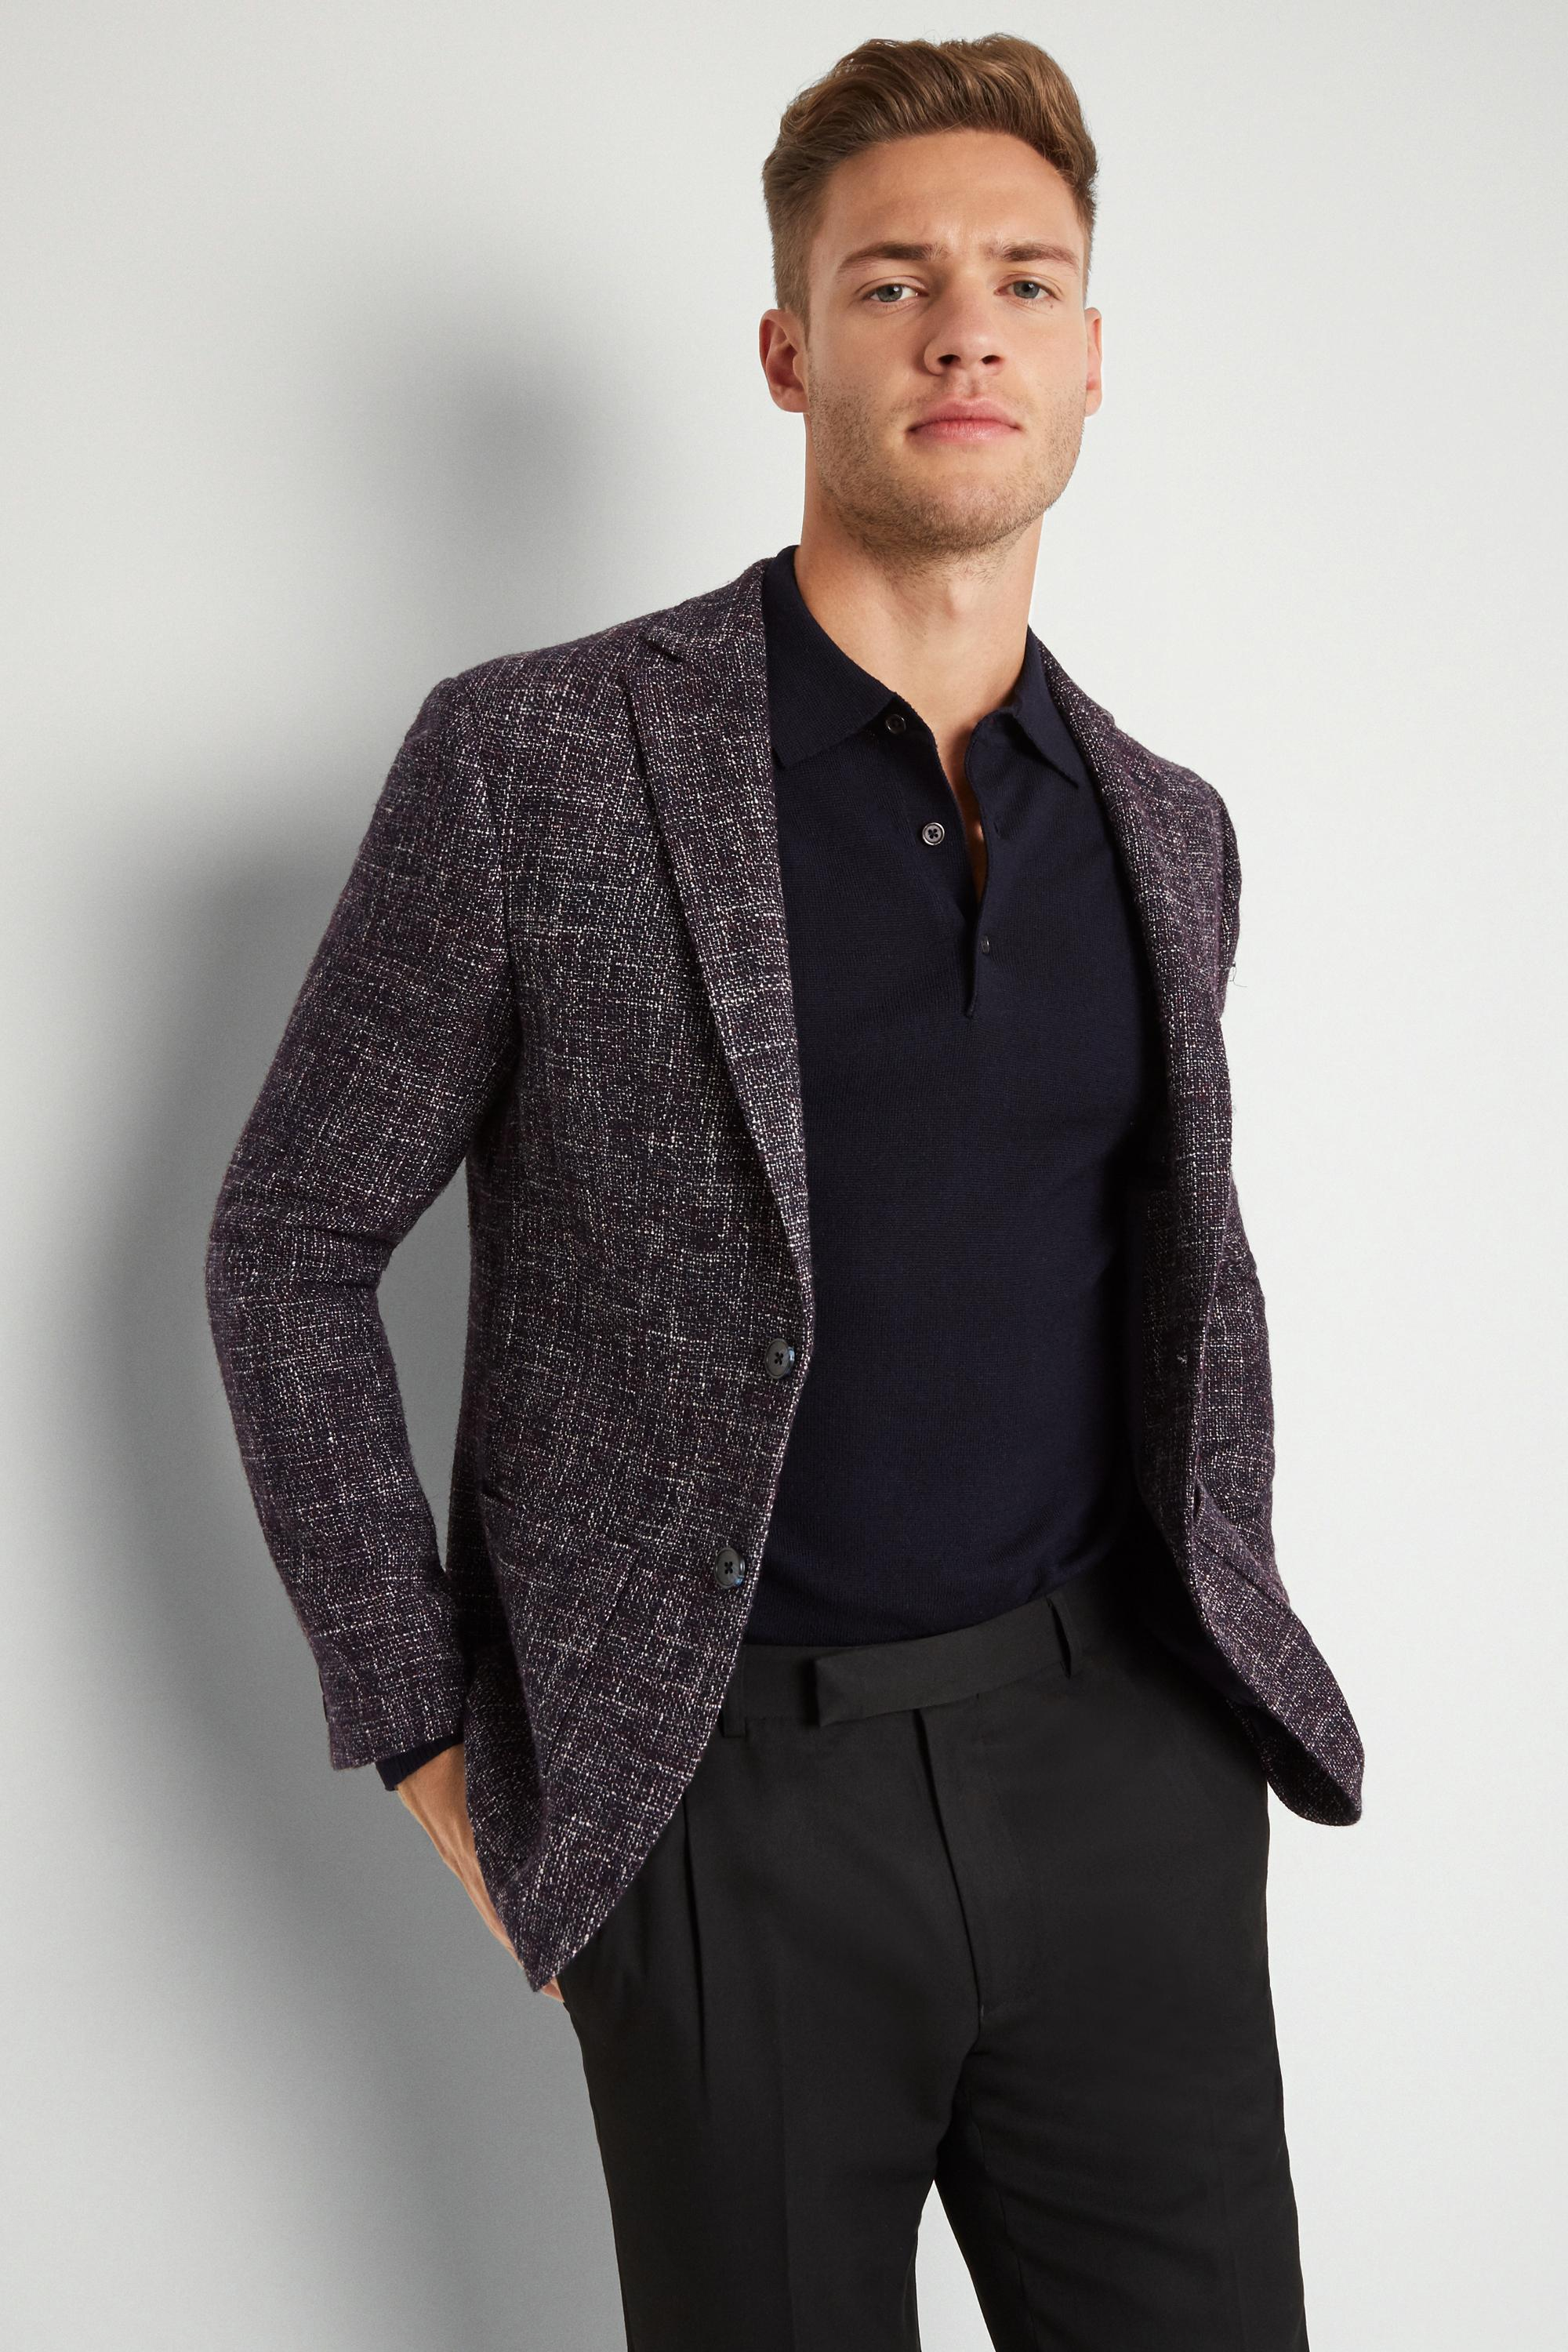 ff5e2284ec442d Lyst - Moss London Skinny Fit Midnight Speckled Jacket in Blue for Men